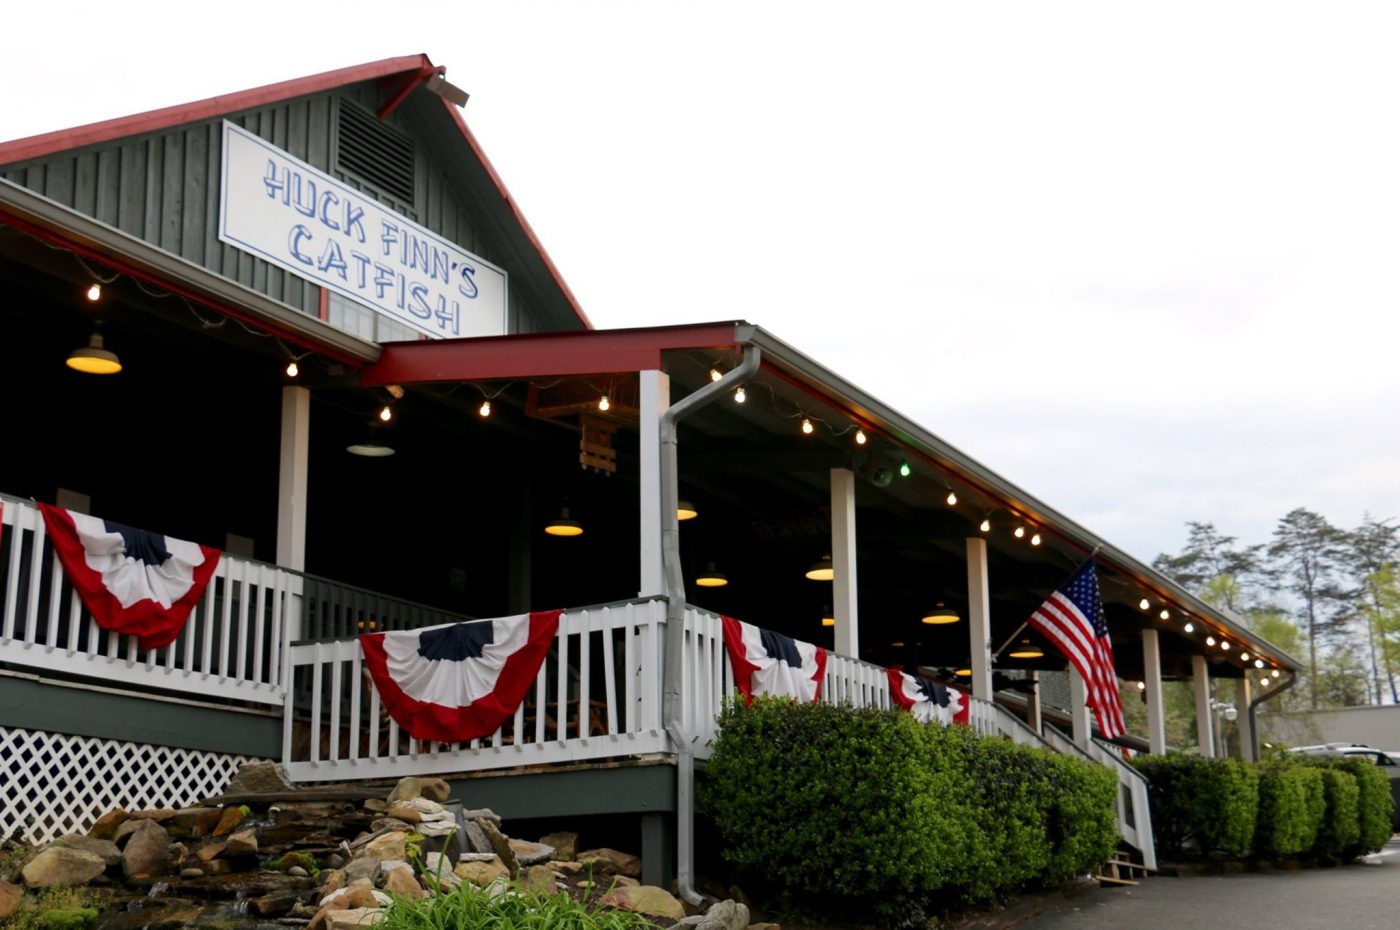 Huck Finn's Catfish is renowned for their large portion sizes and menu options.